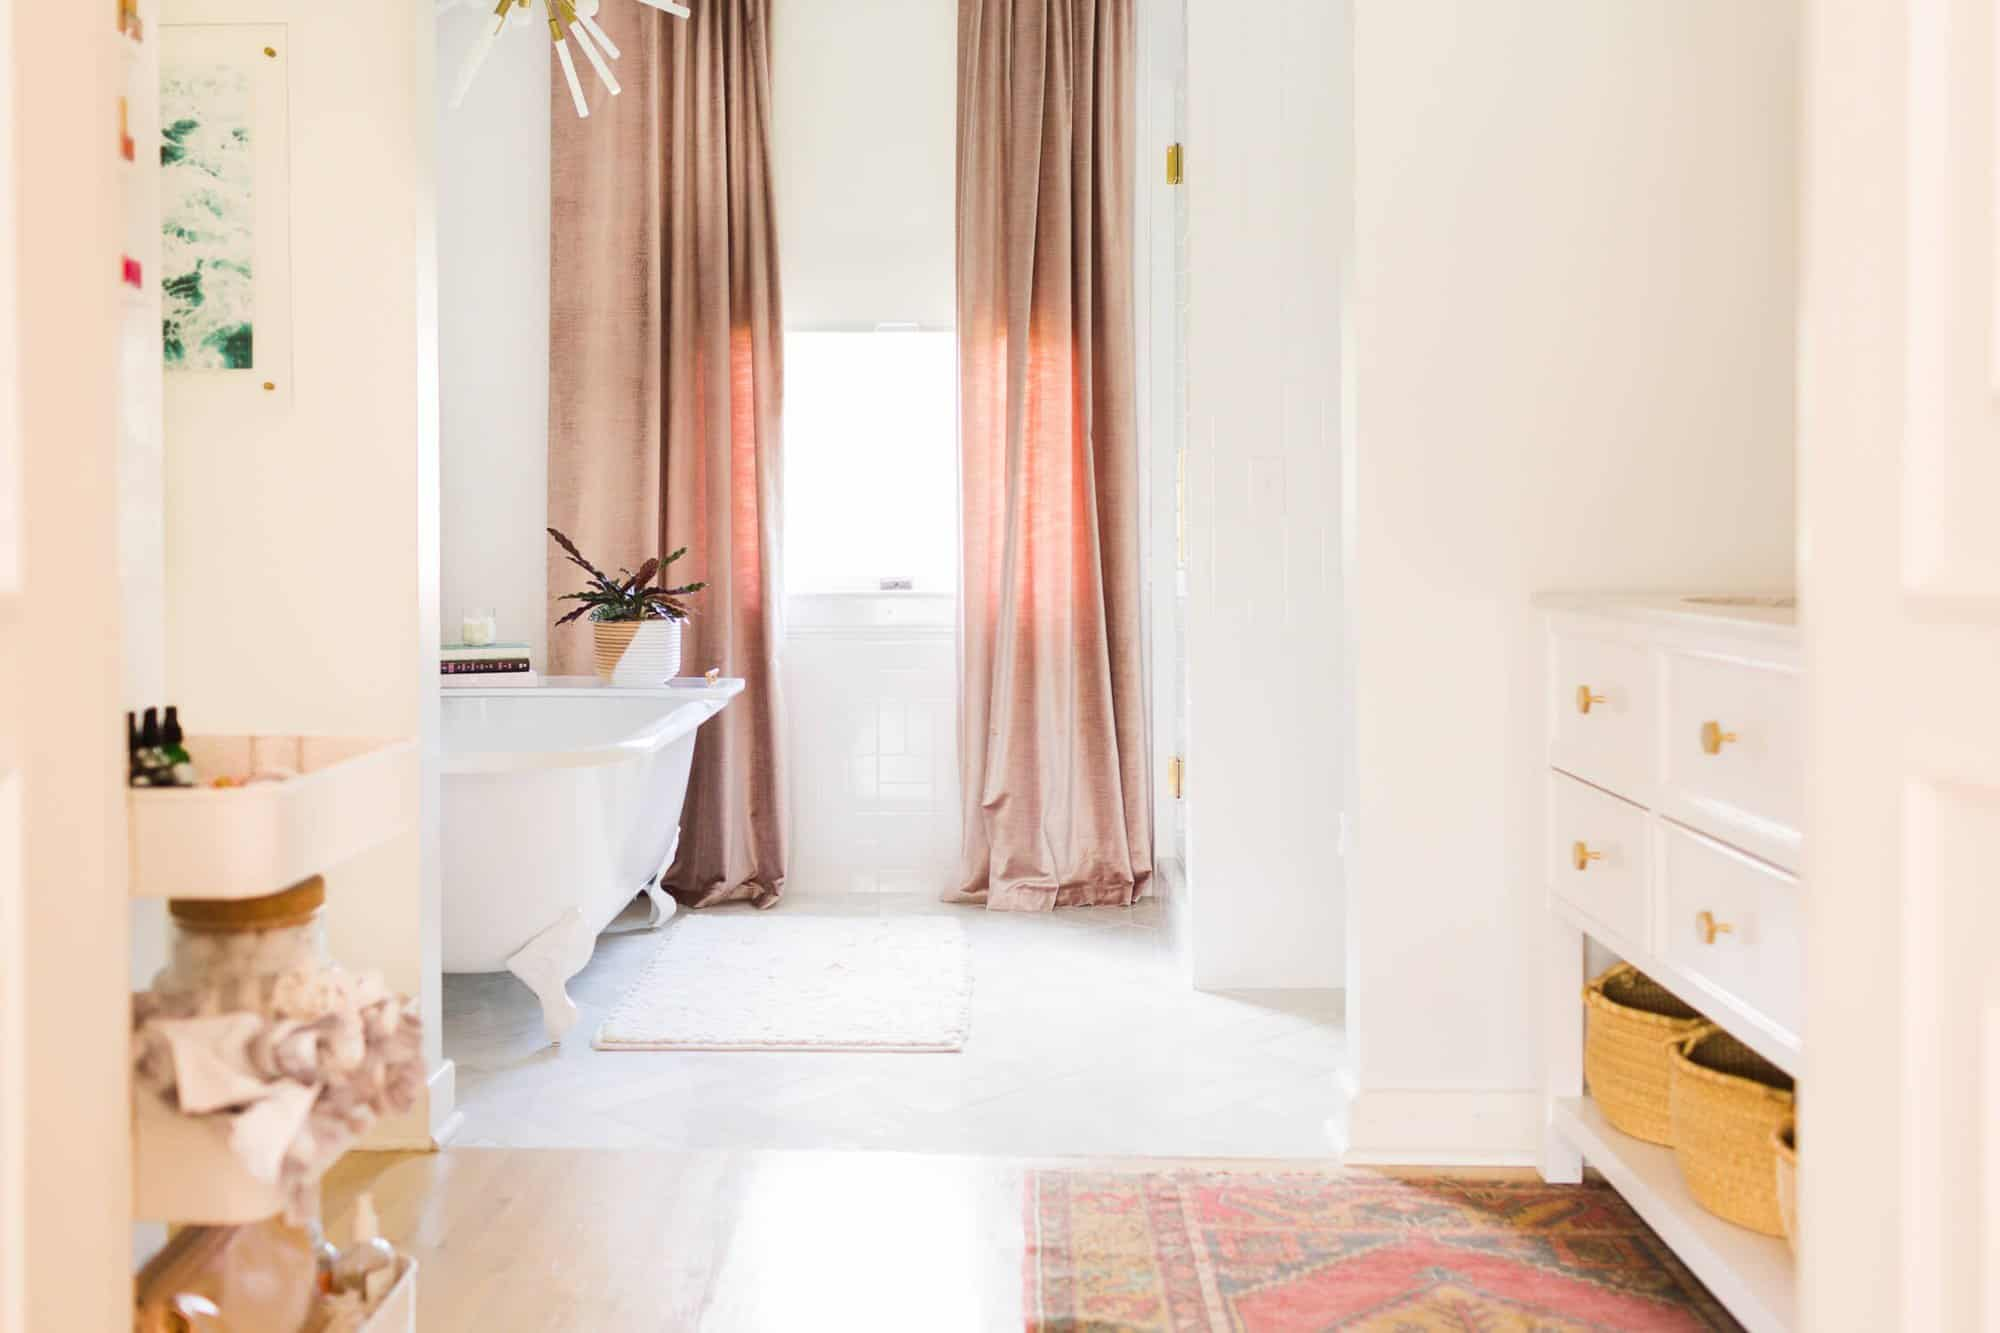 Elsie's Master Bathroom Tour (Before + After) - A Beautiful Mess